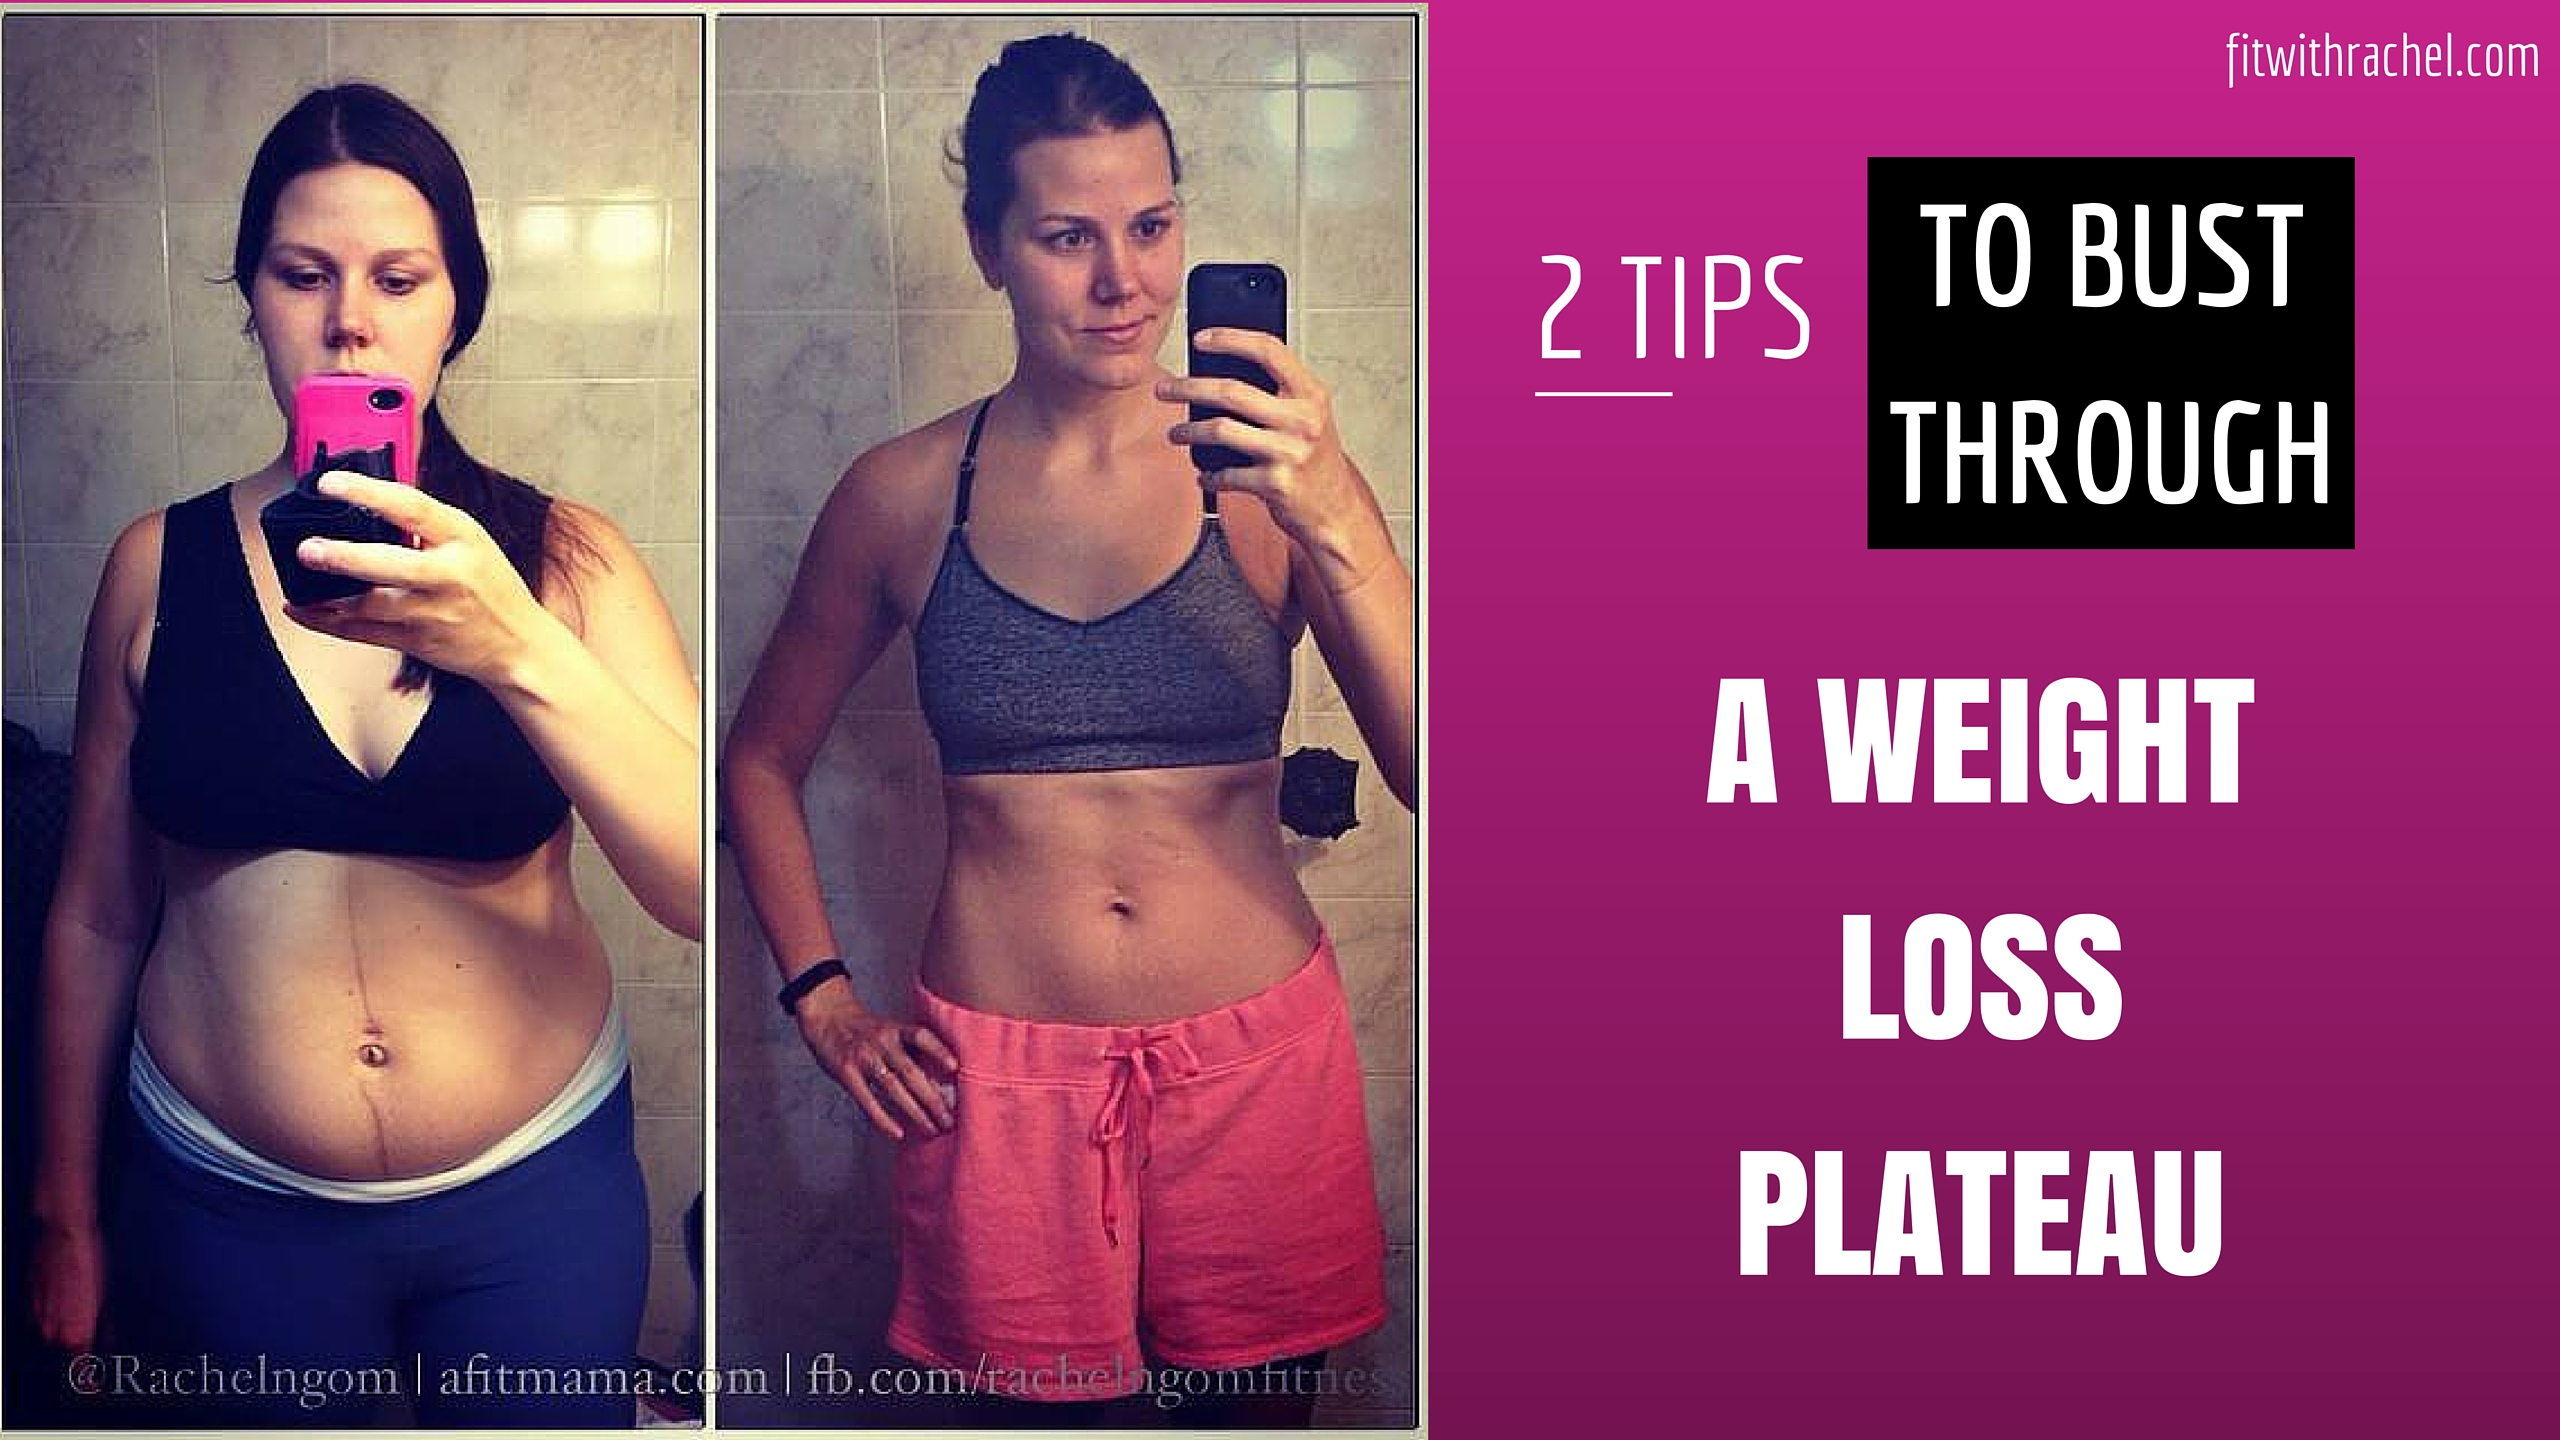 pics Here's How You Bust Through a Plateau